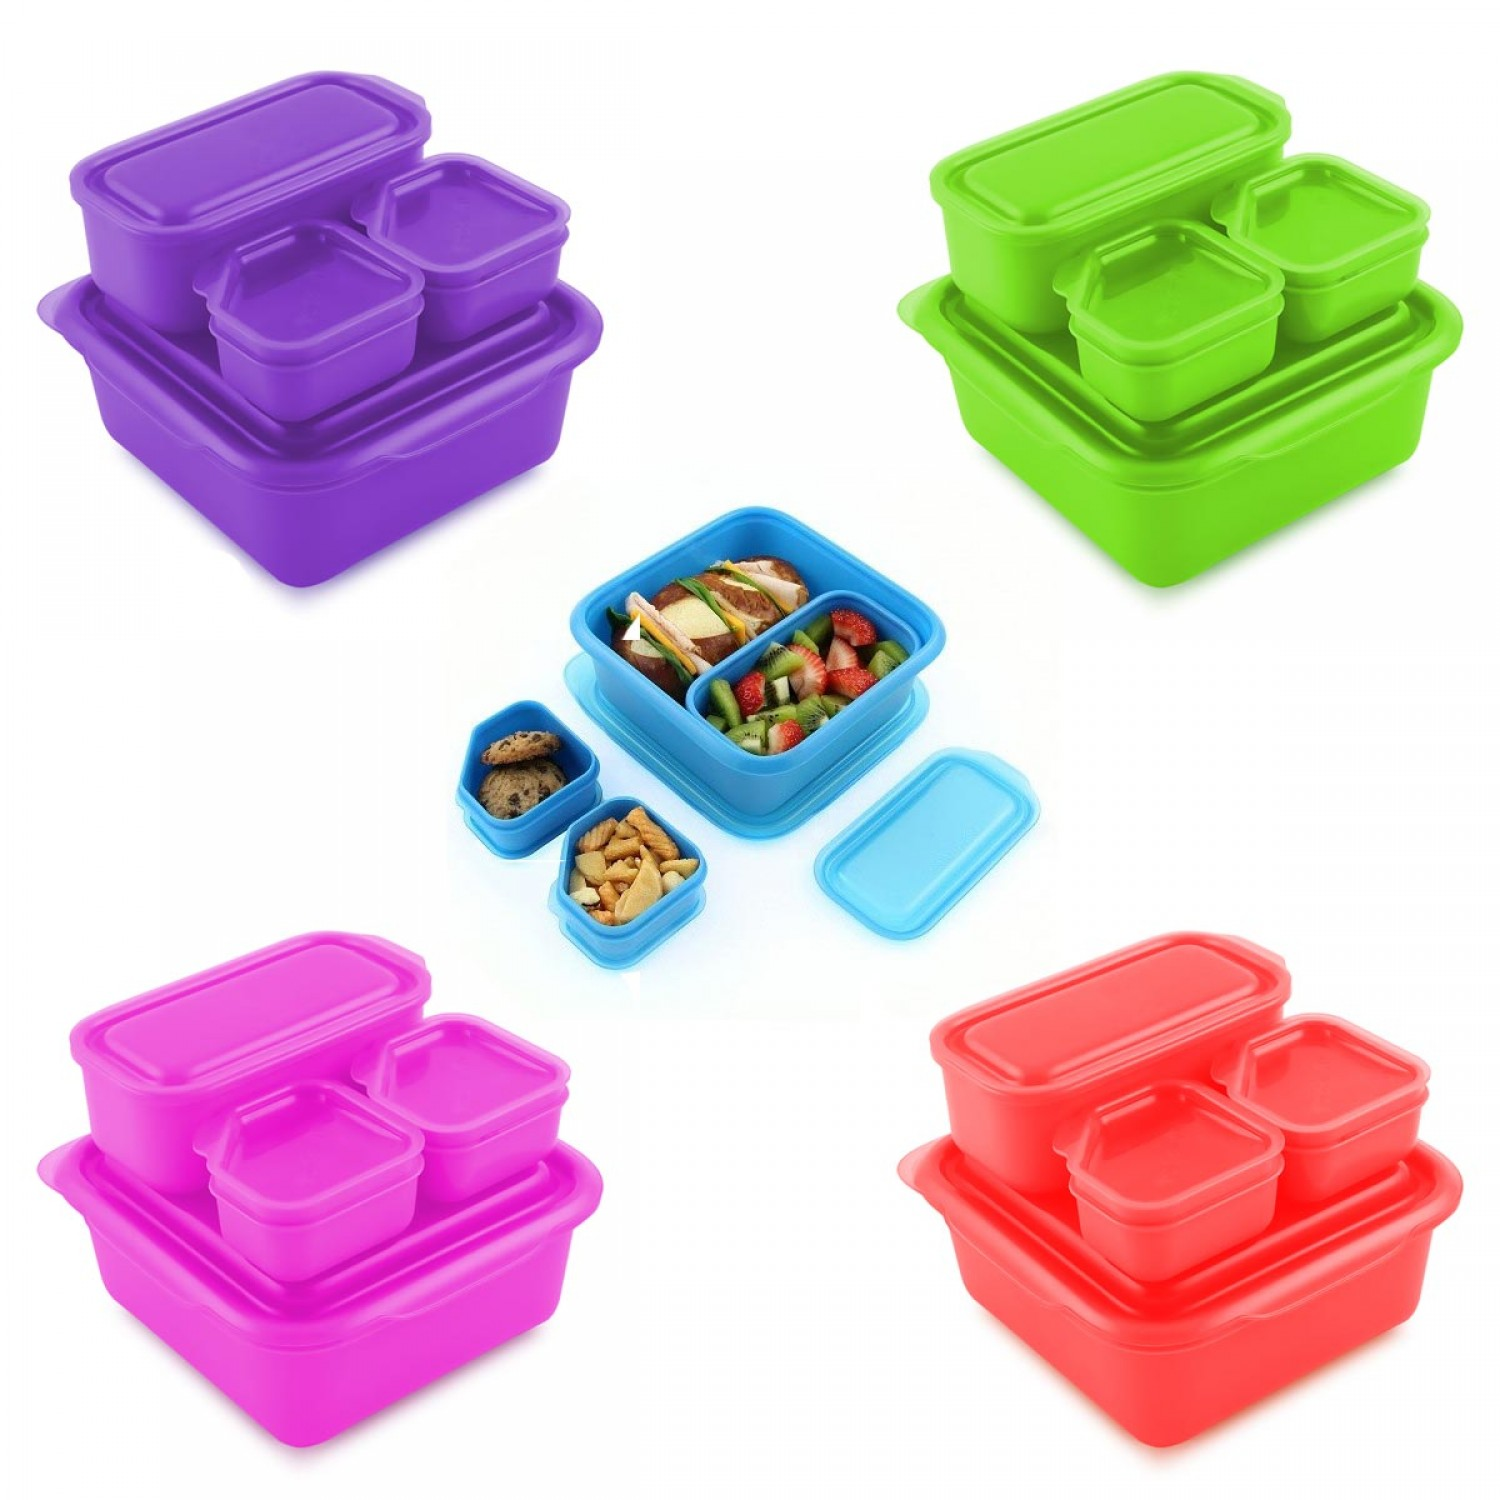 Goodbyn Portions Lunch Box Set mit Portionsschalen